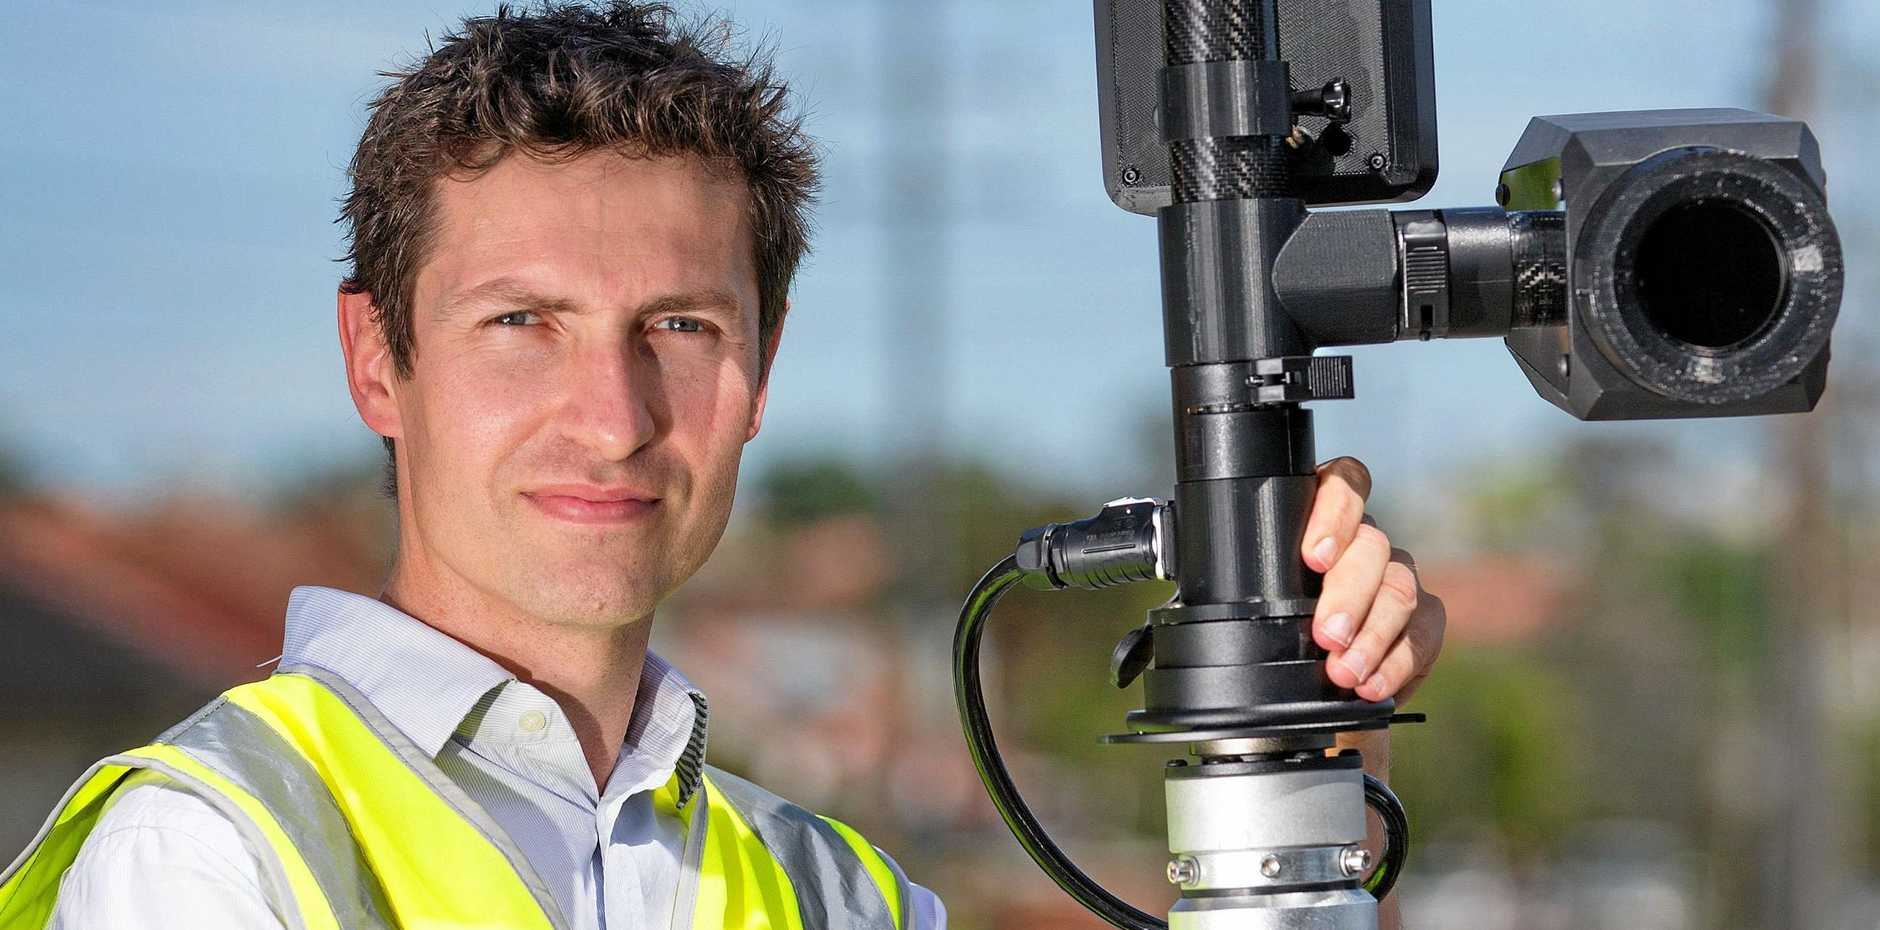 Alex McCredie with the cameras which can detect people using their mobile phones while driving.